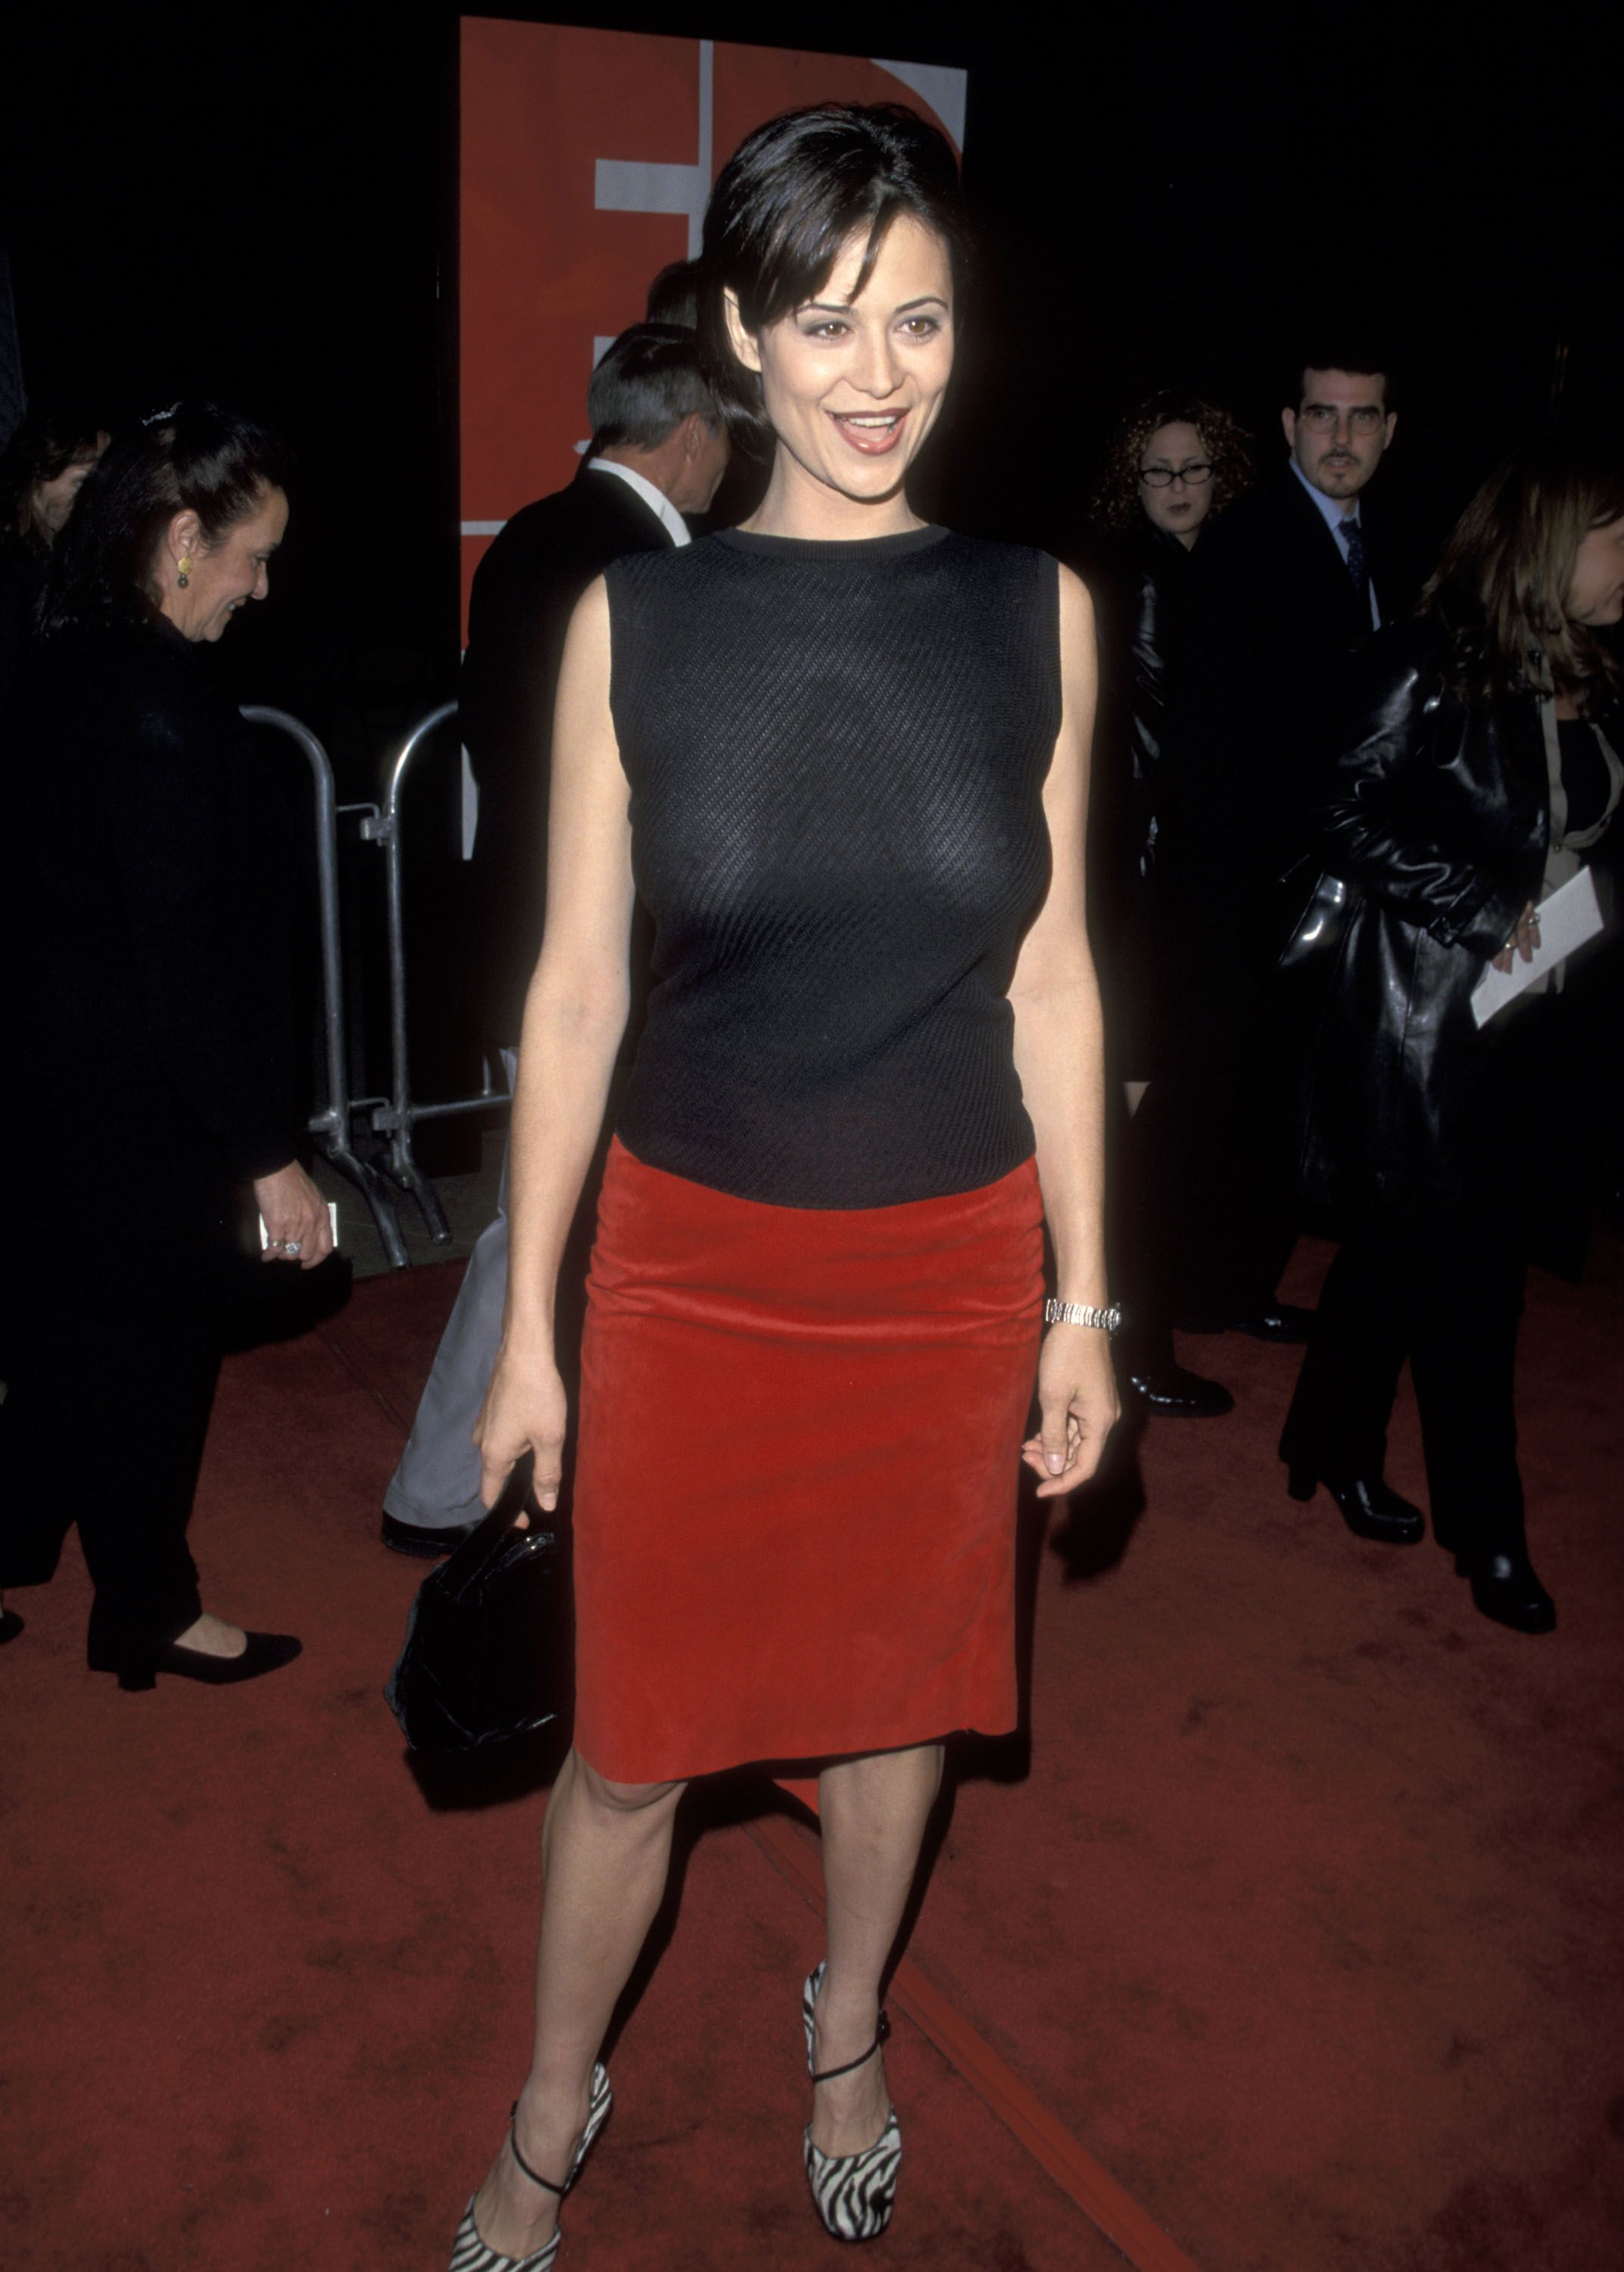 Catherine bell s tits